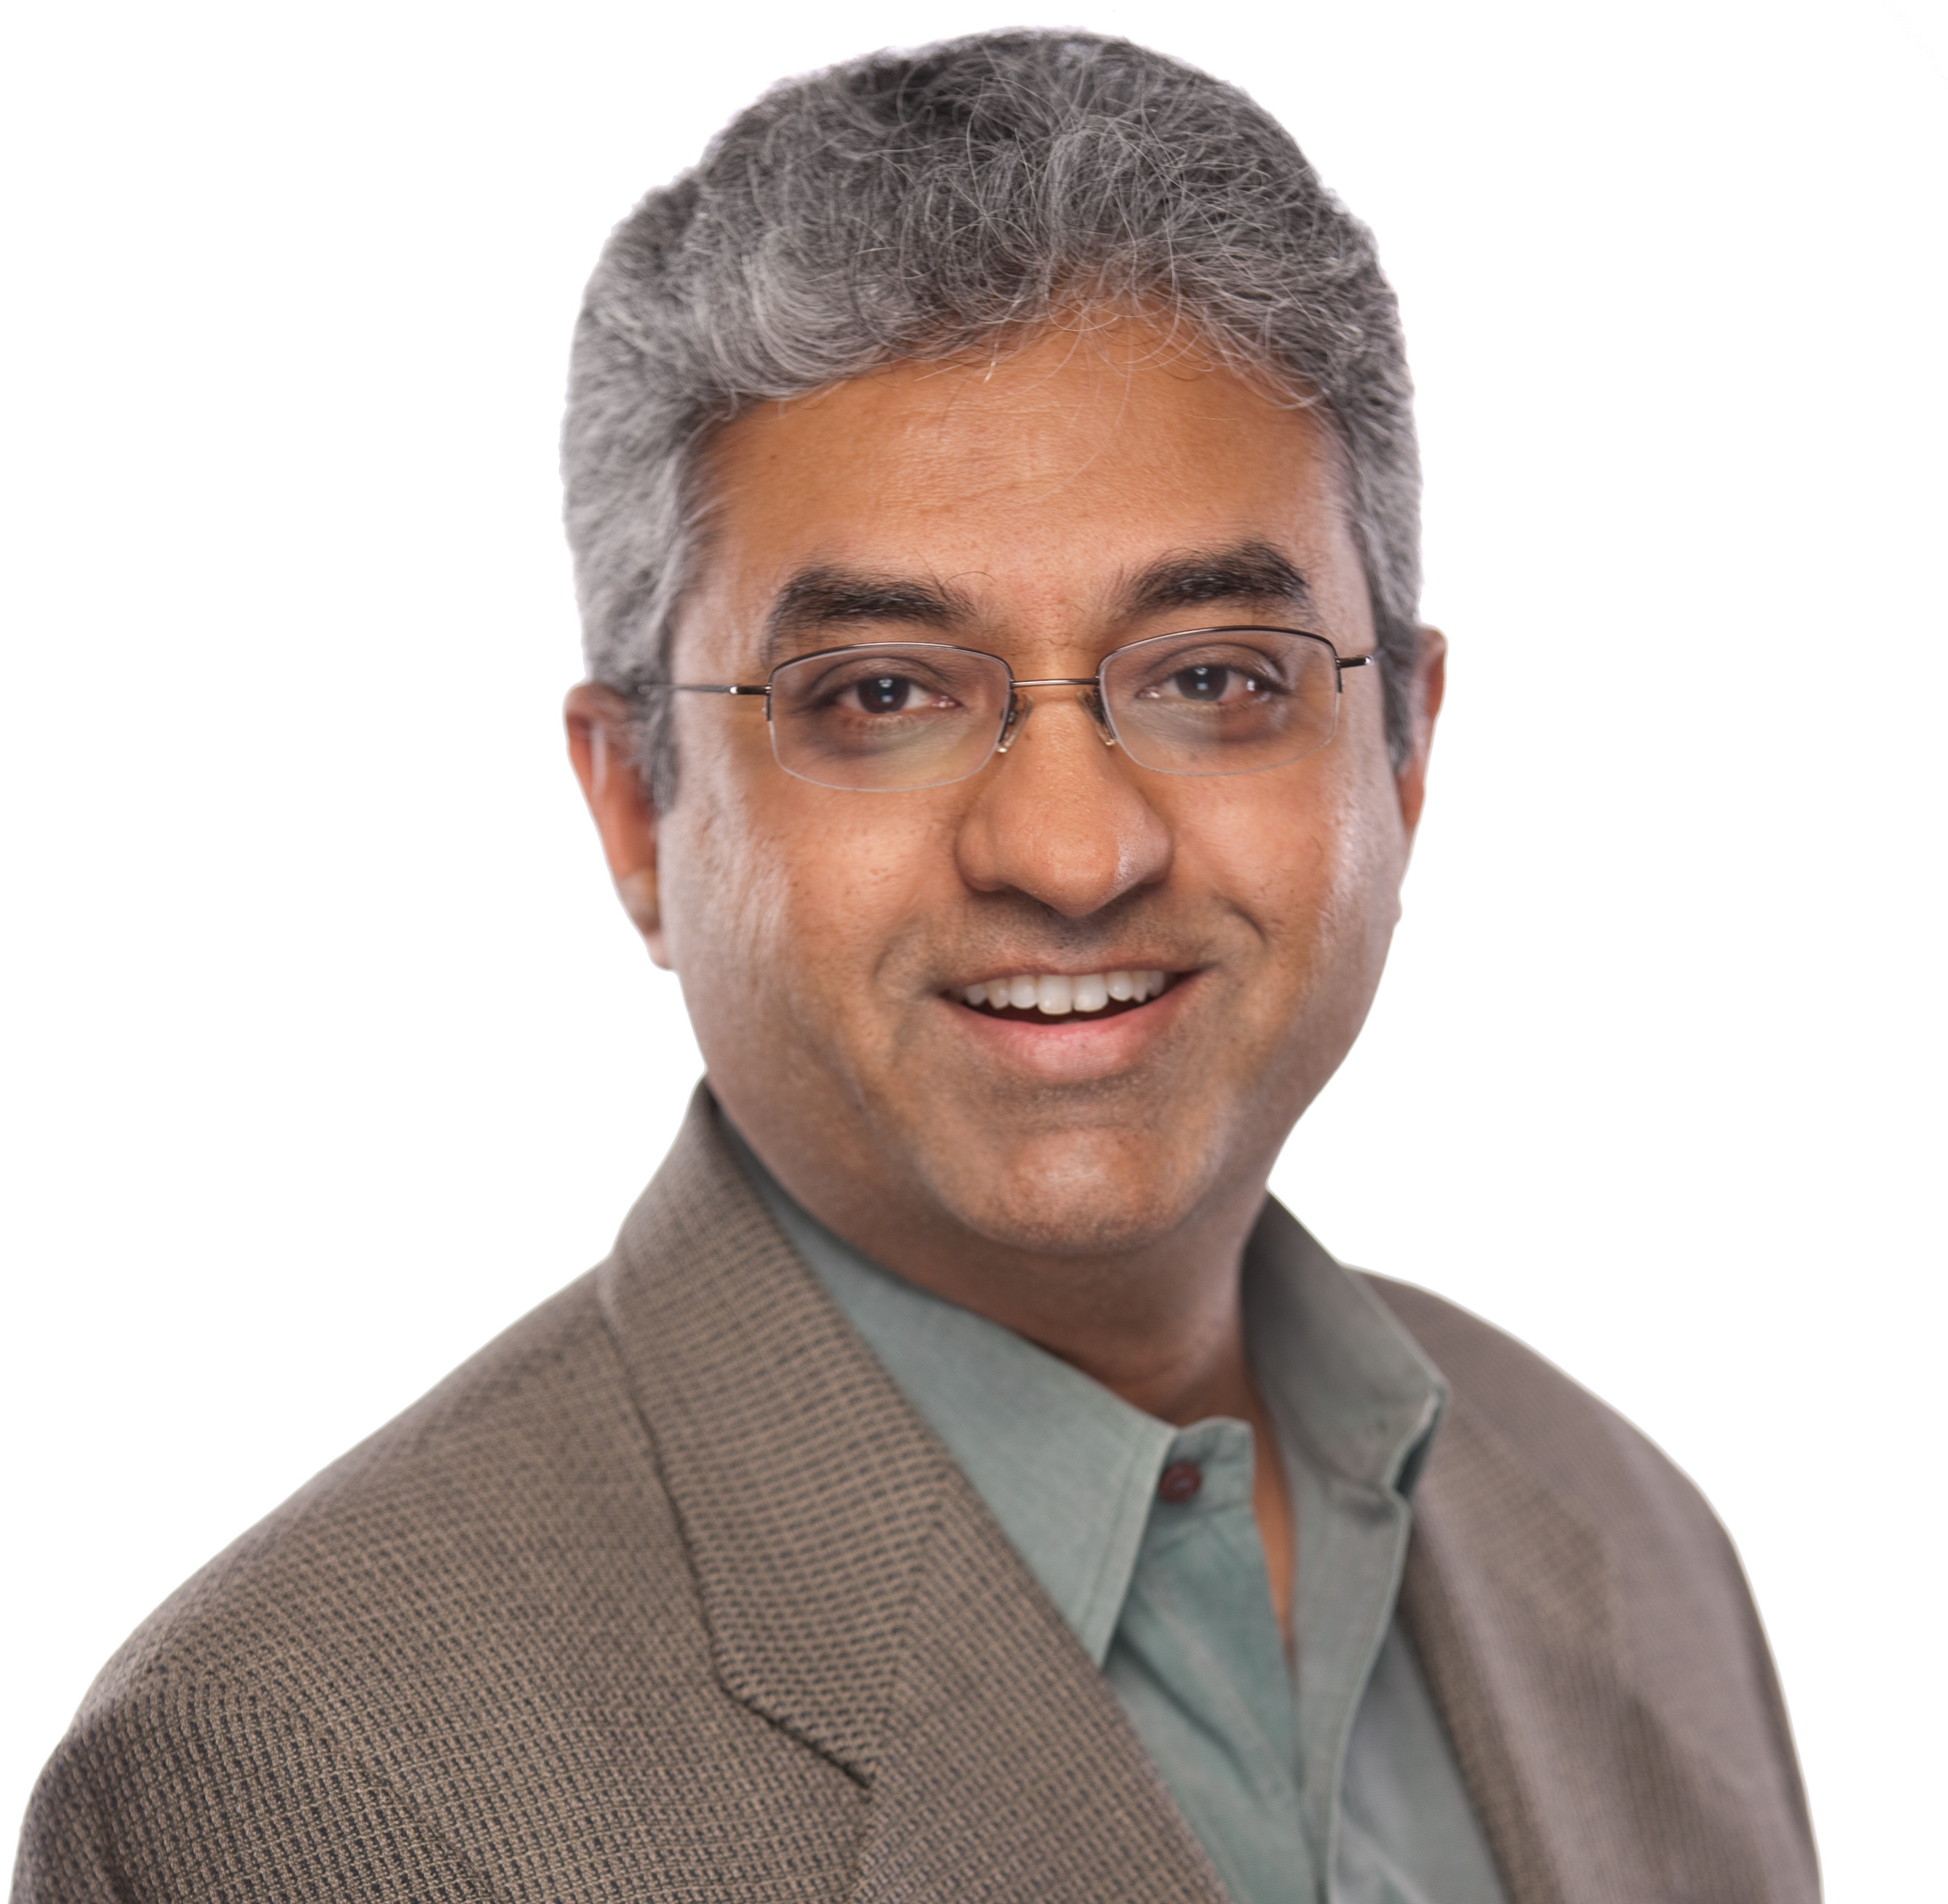 Rajeev Venkat, Verint